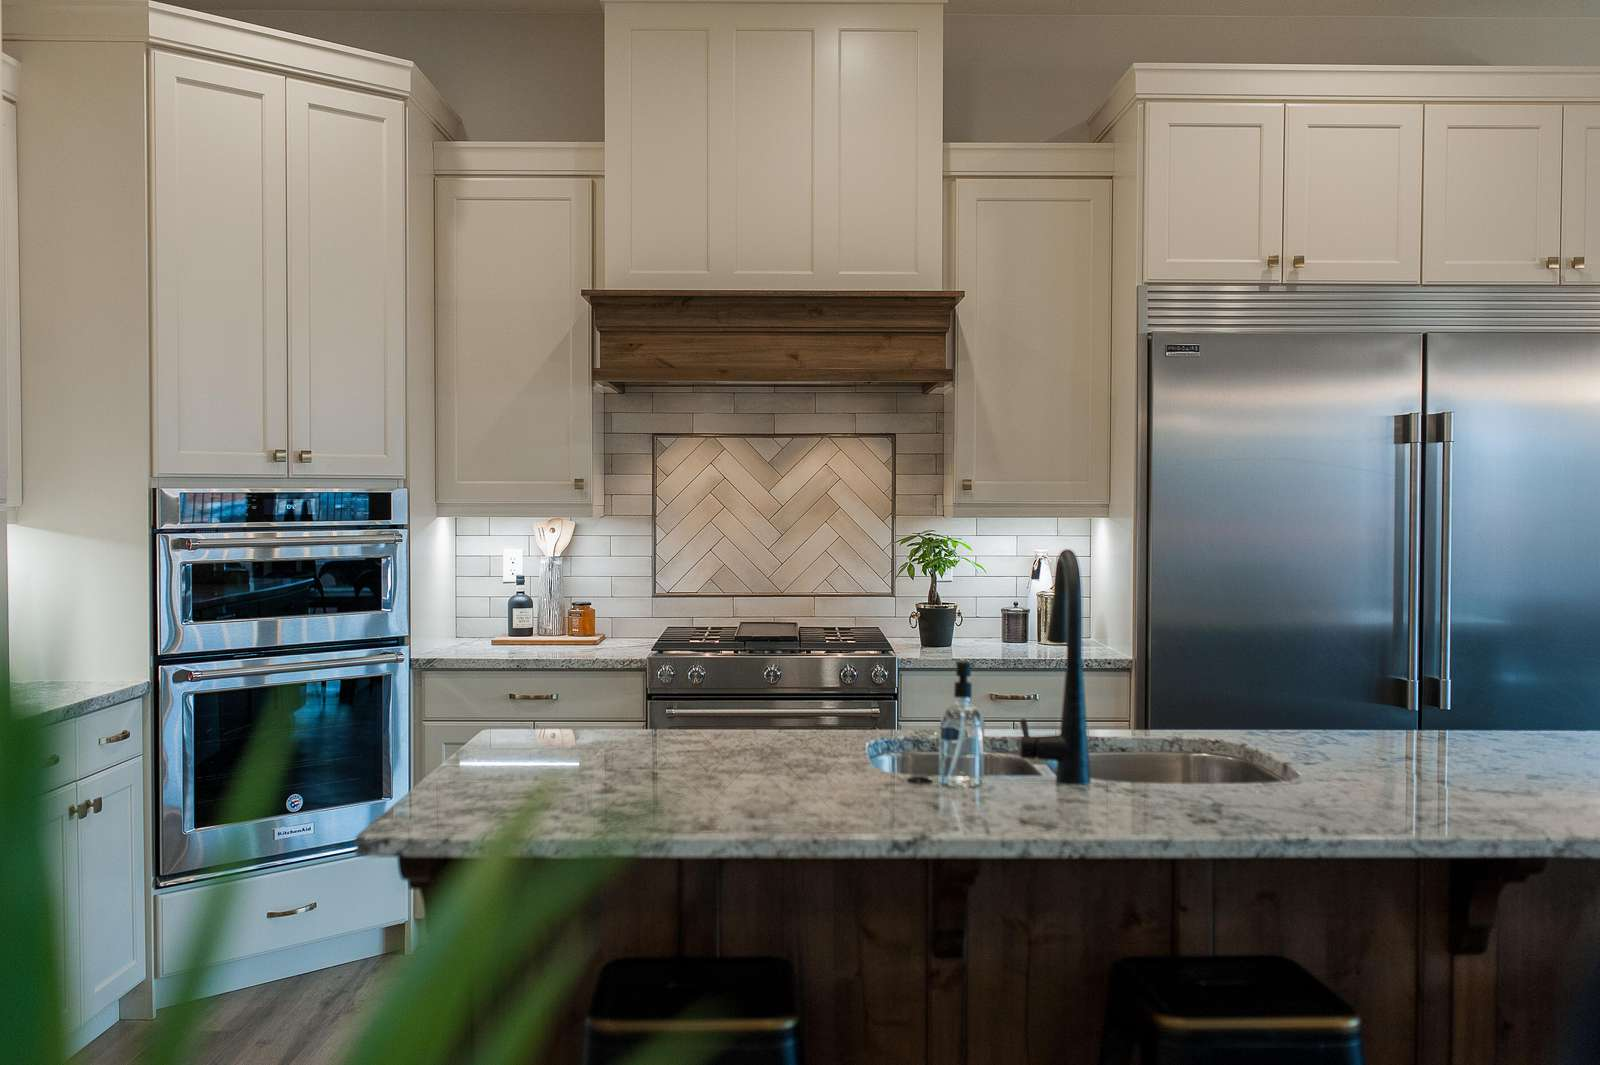 Grand kitchen features a sub-zero style refrigerator, gas range, oven, icemaker